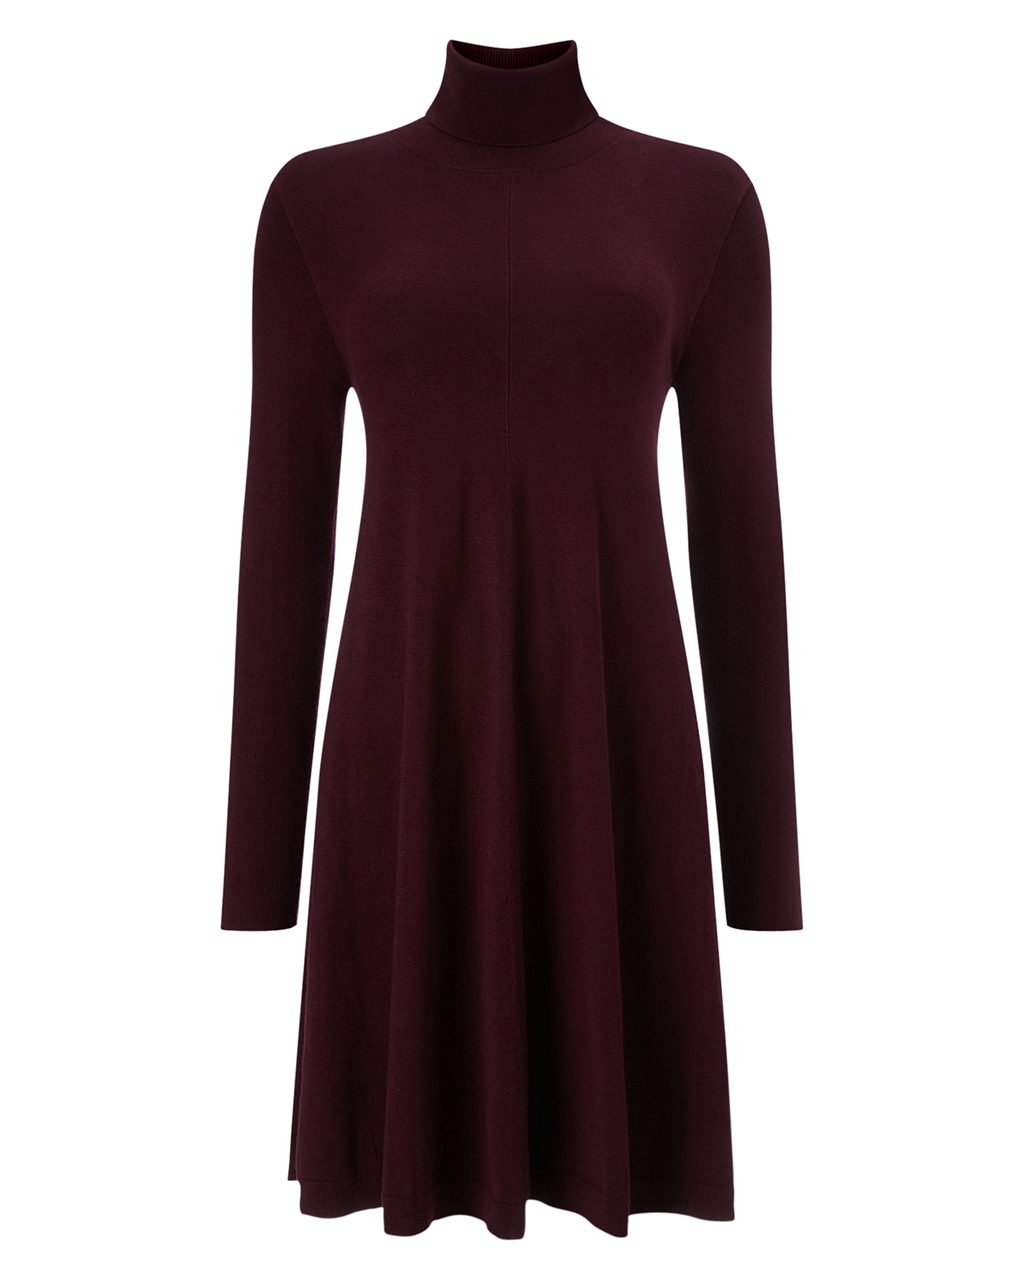 Melody Swing Tunic - pattern: plain; style: tunic; neckline: roll neck; predominant colour: aubergine; occasions: casual, creative work; fit: loose; length: mid thigh; sleeve length: long sleeve; sleeve style: standard; texture group: knits/crochet; pattern type: knitted - other; season: a/w 2015; wardrobe: highlight